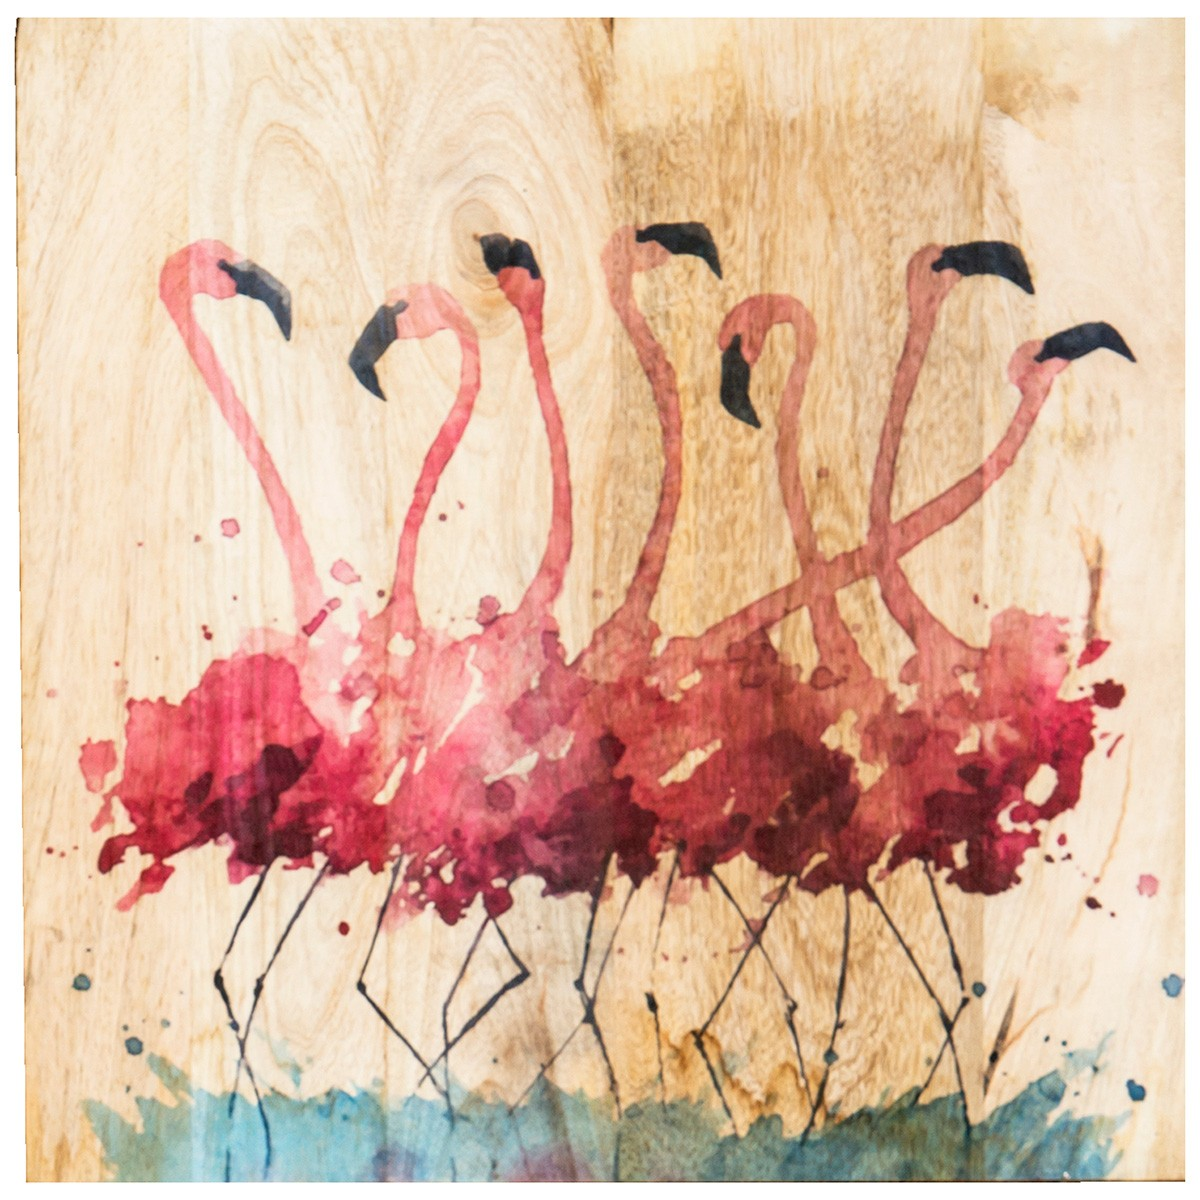 Flamingo Printed Wooden Board Wall Art, 60cm